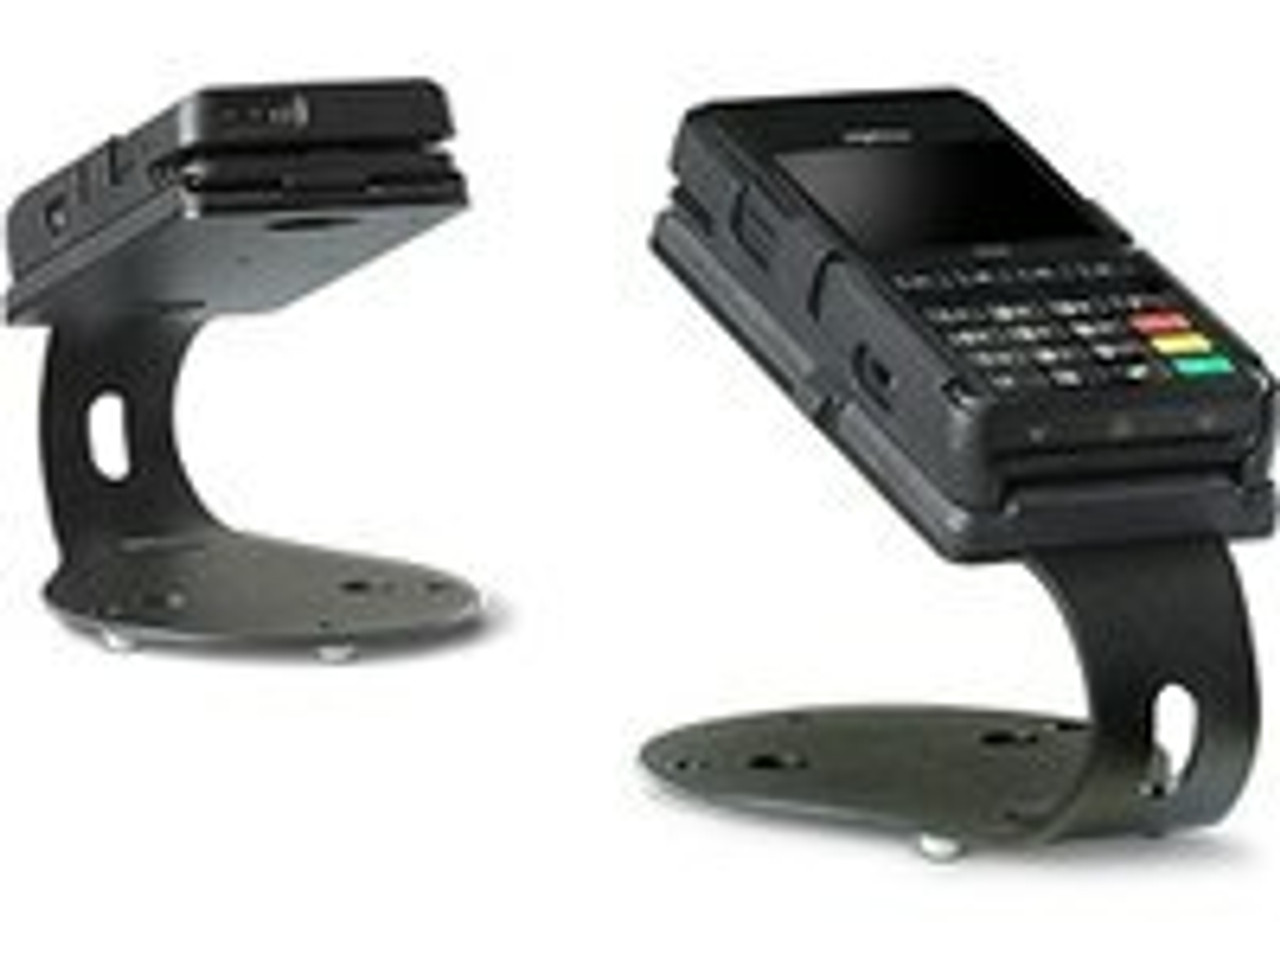 Ingenico Link 2500i Credit Card Stand by SpacePole